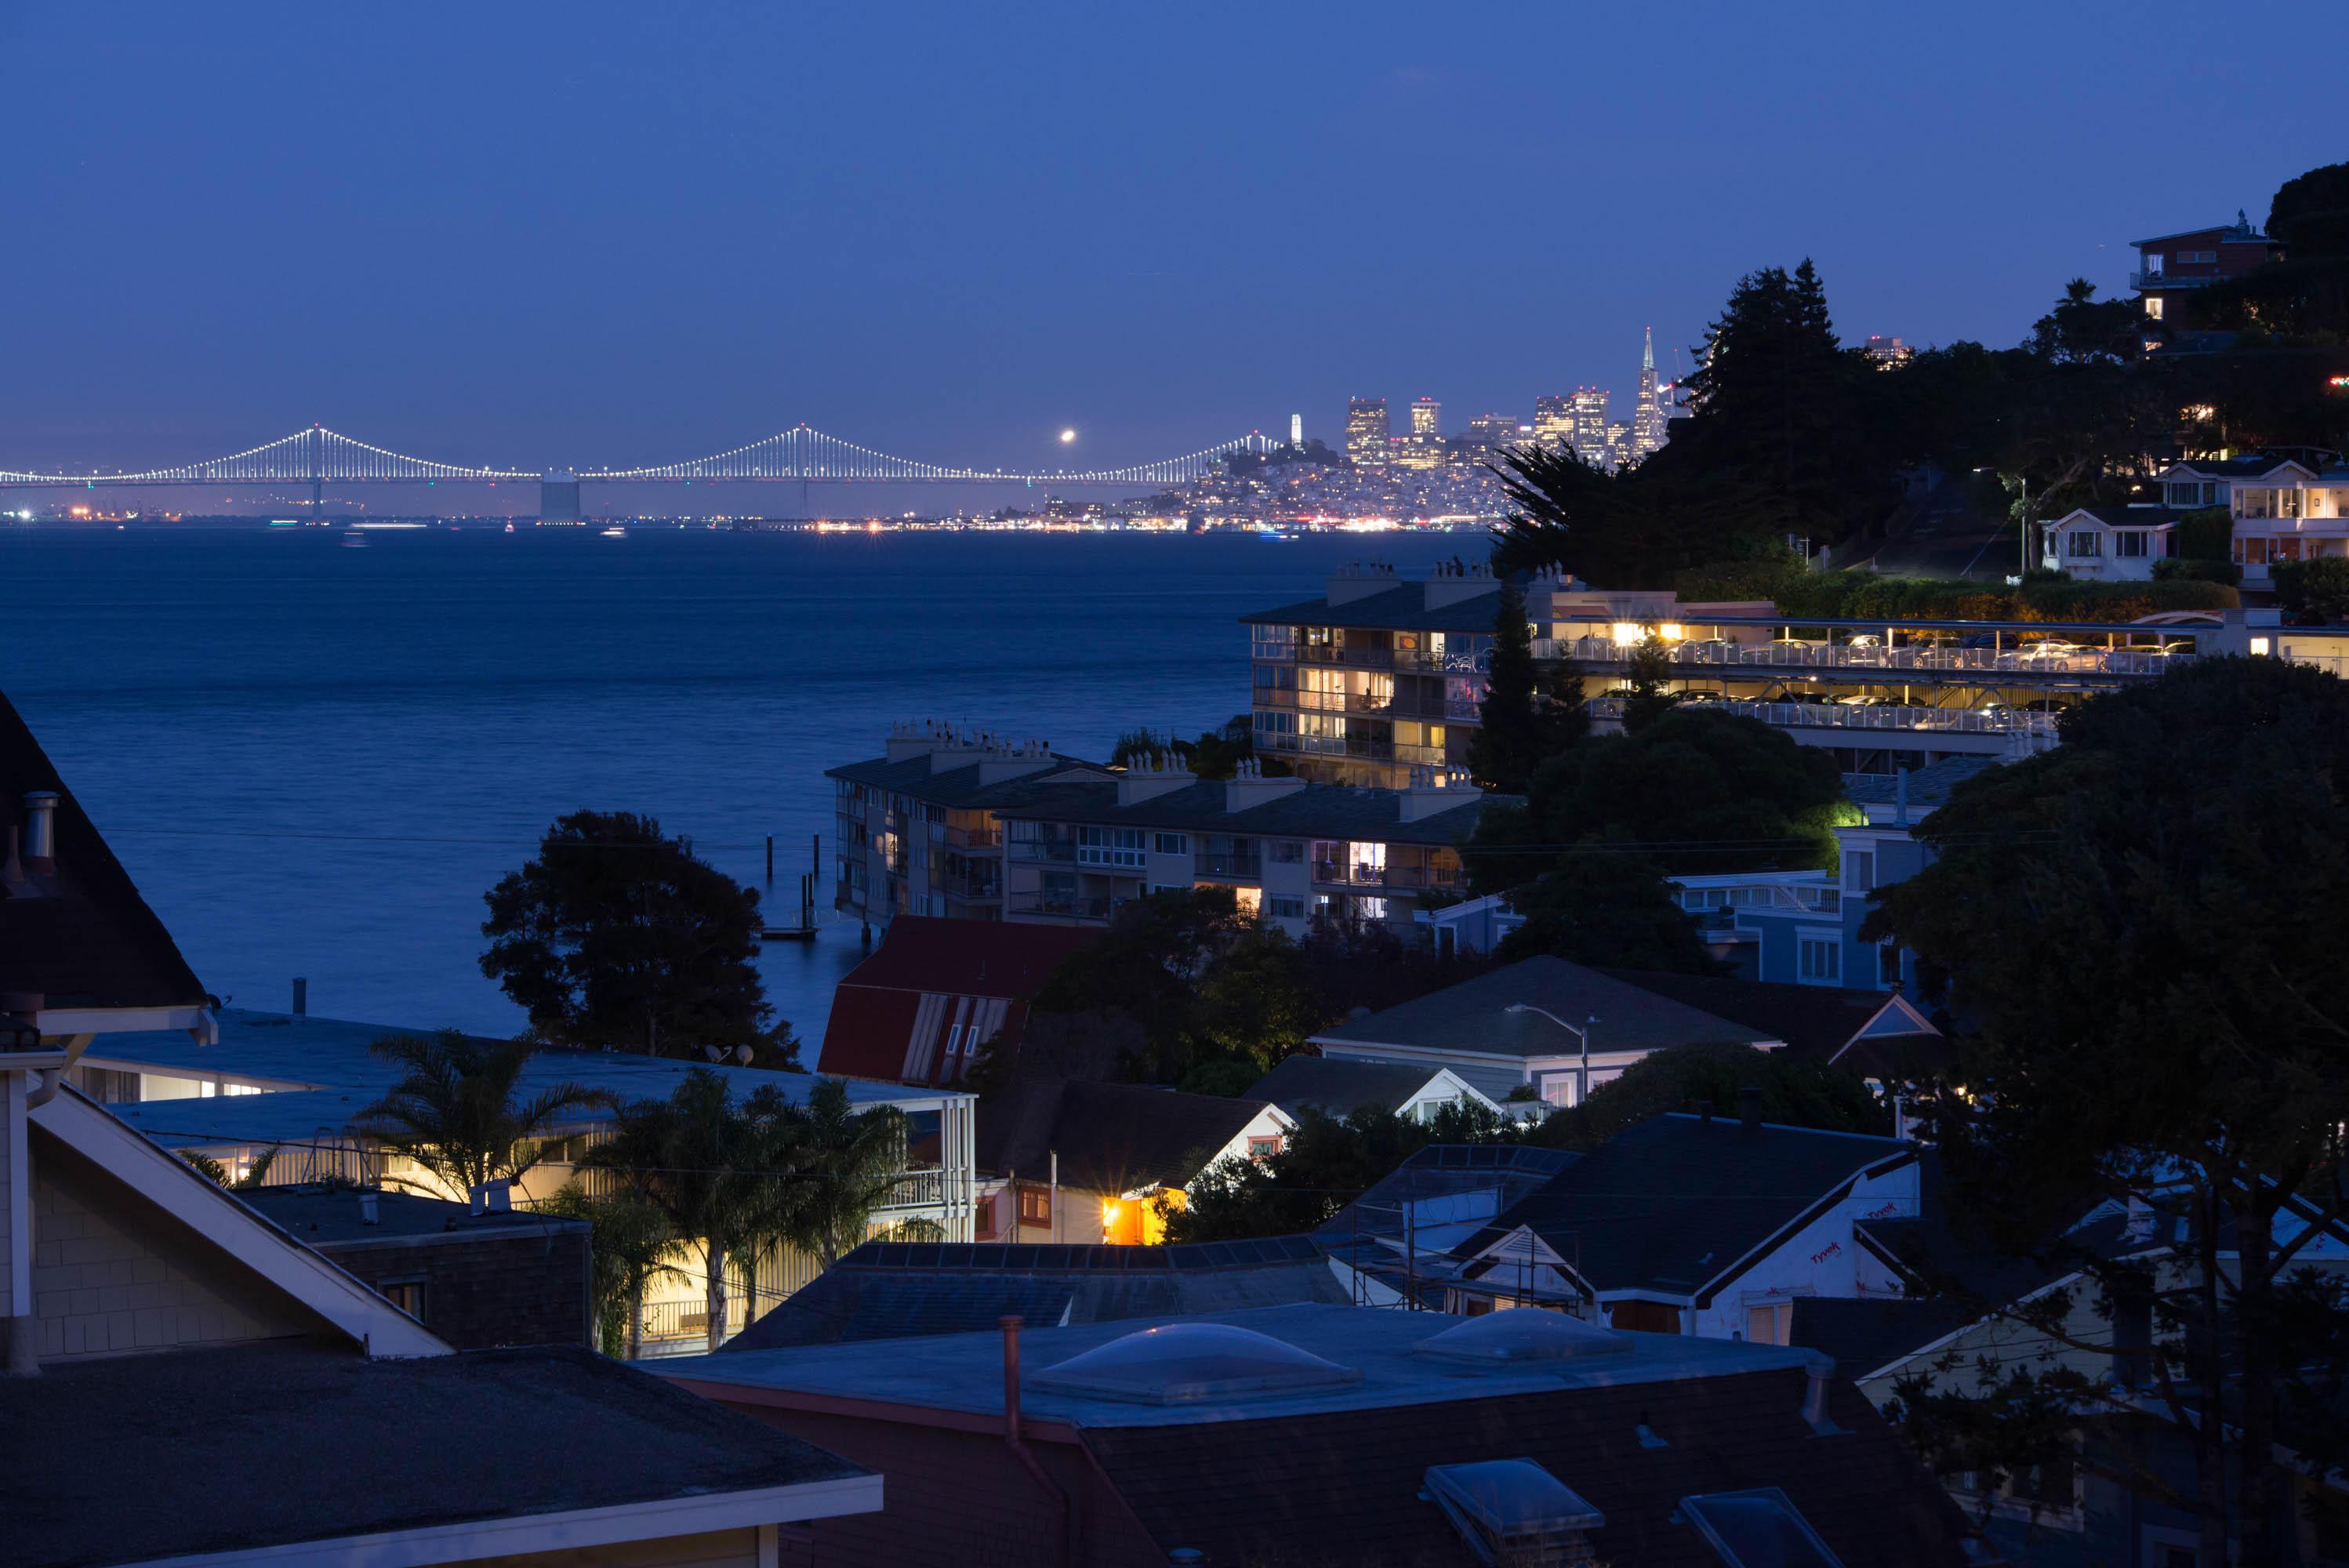 Single Family Home for Sale at Sophisticated Sausalito Home with San Francisco Views 214 4th Street Sausalito, California 94965 United States